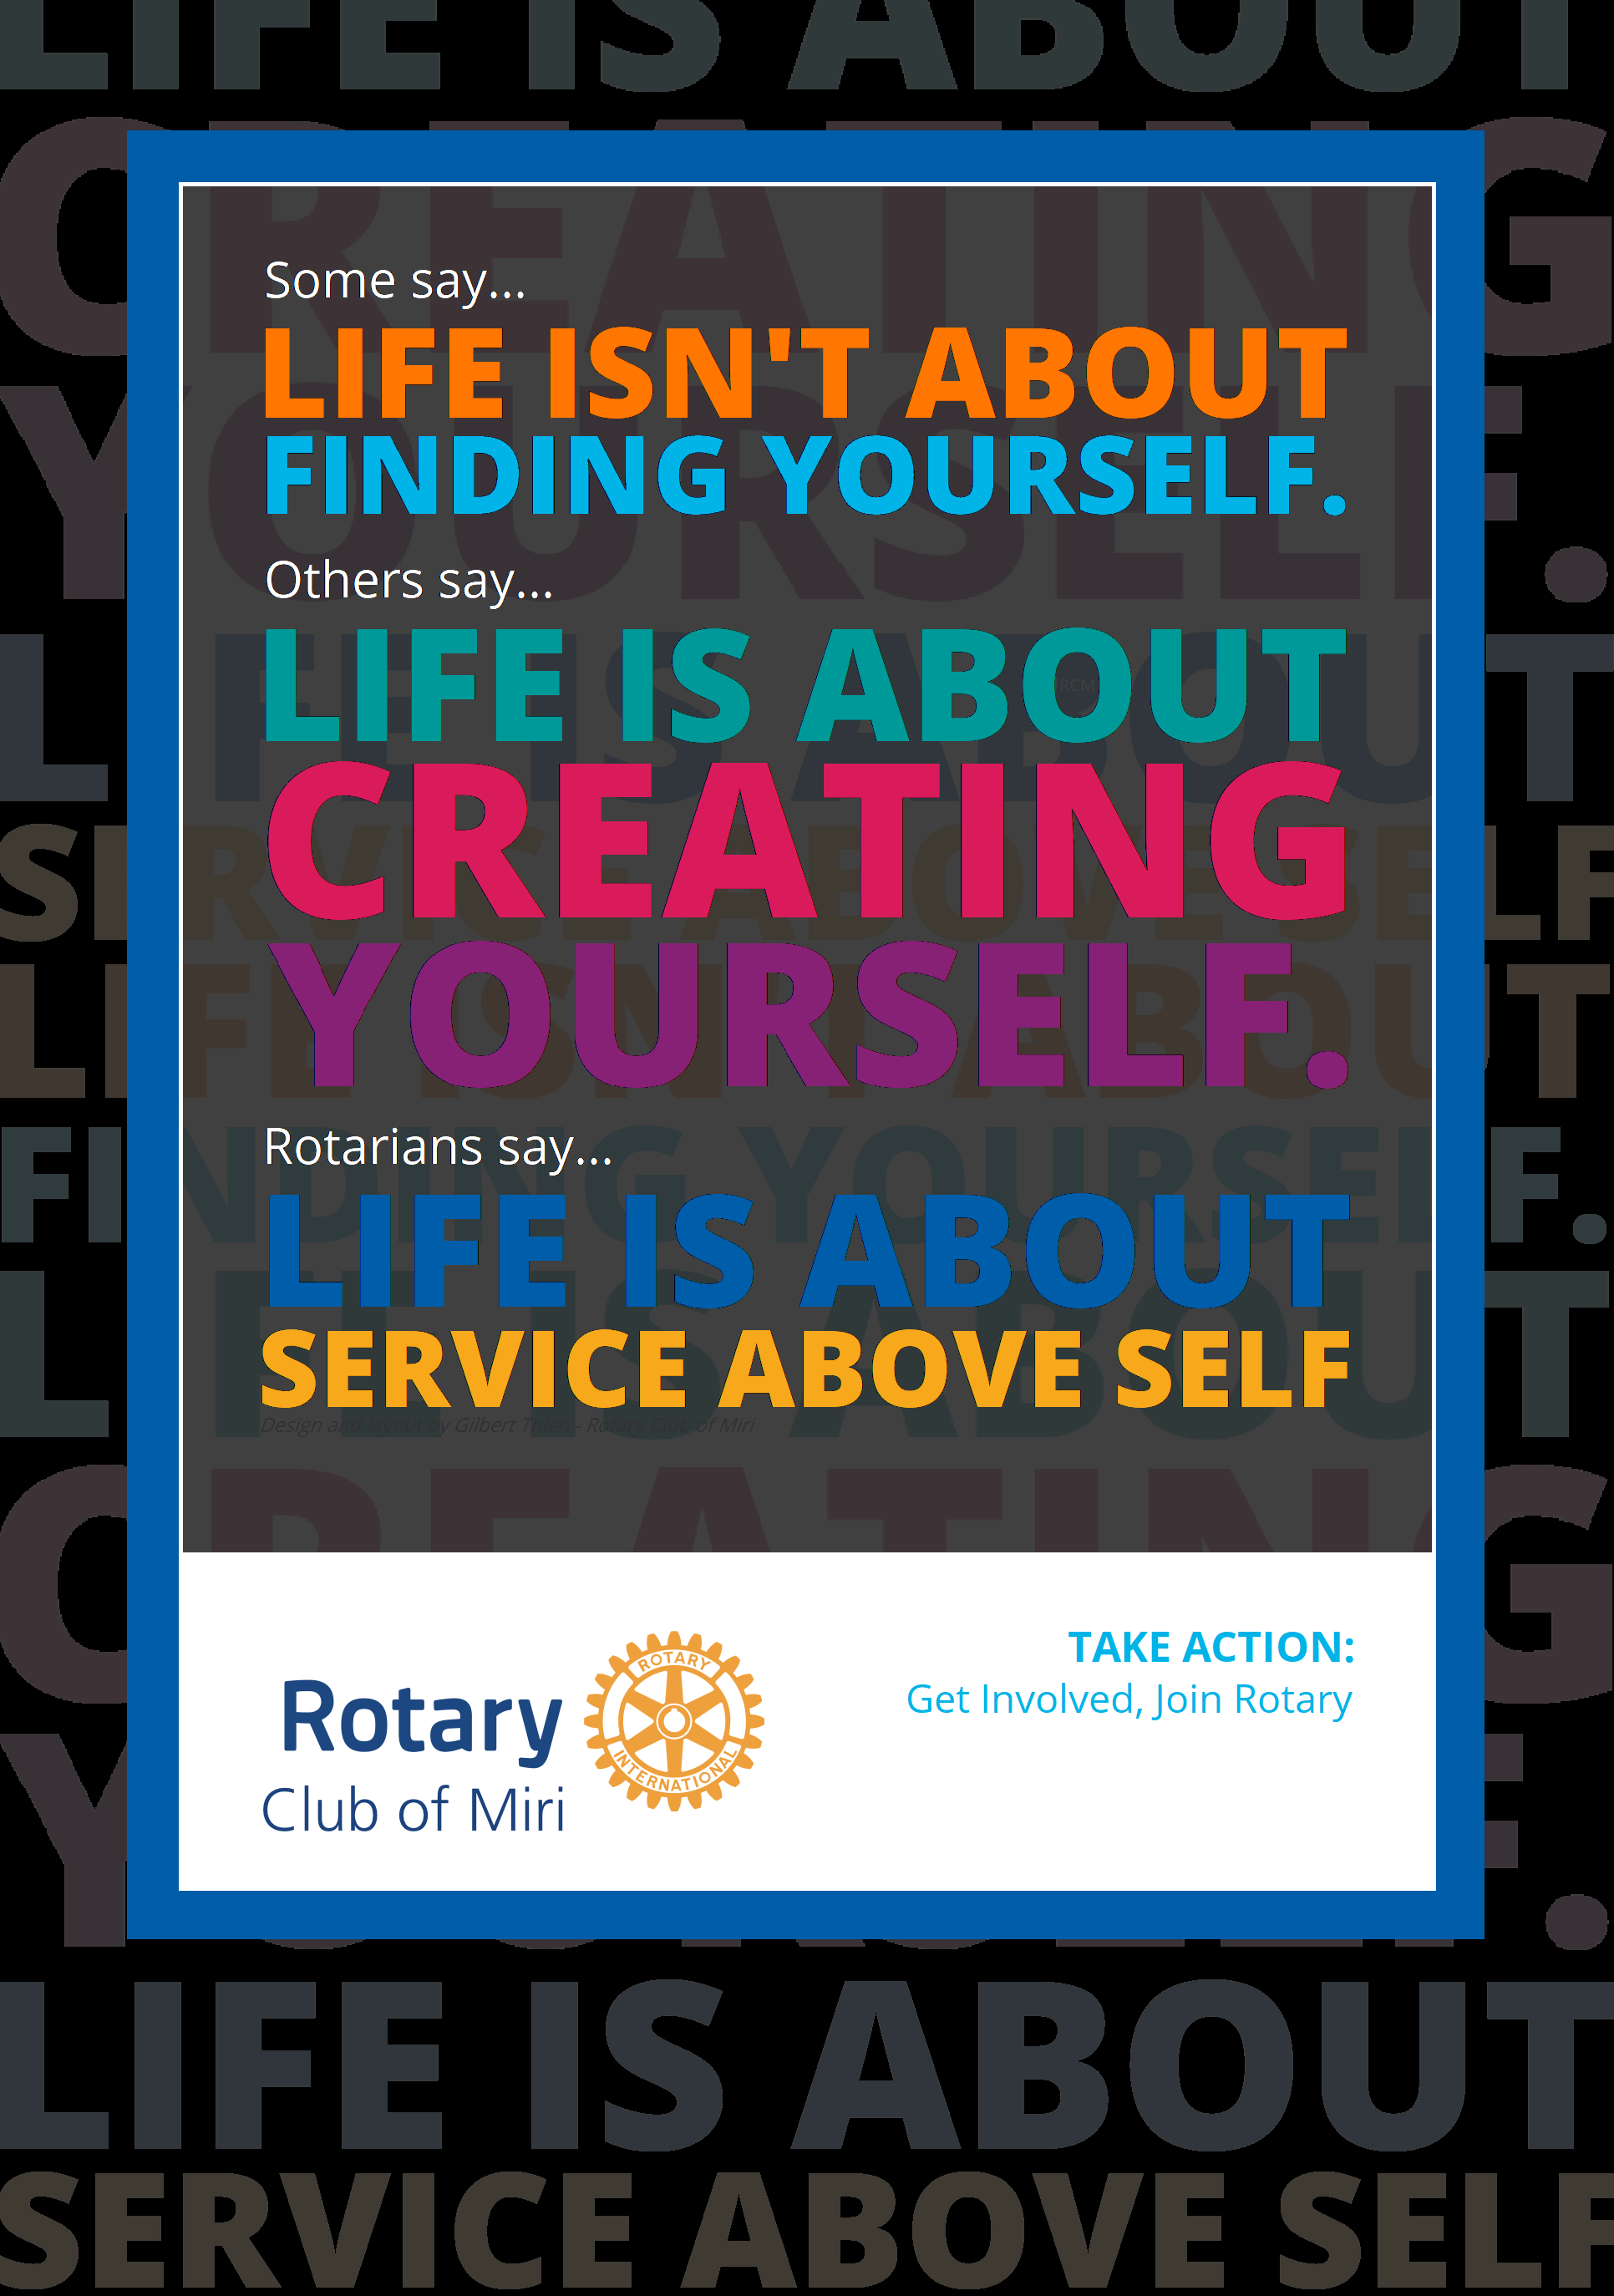 rotary club of miri mini poster ry2020 21 life is about service above self black by gt in 2020 rotary club rotarian life rotary club of miri mini poster